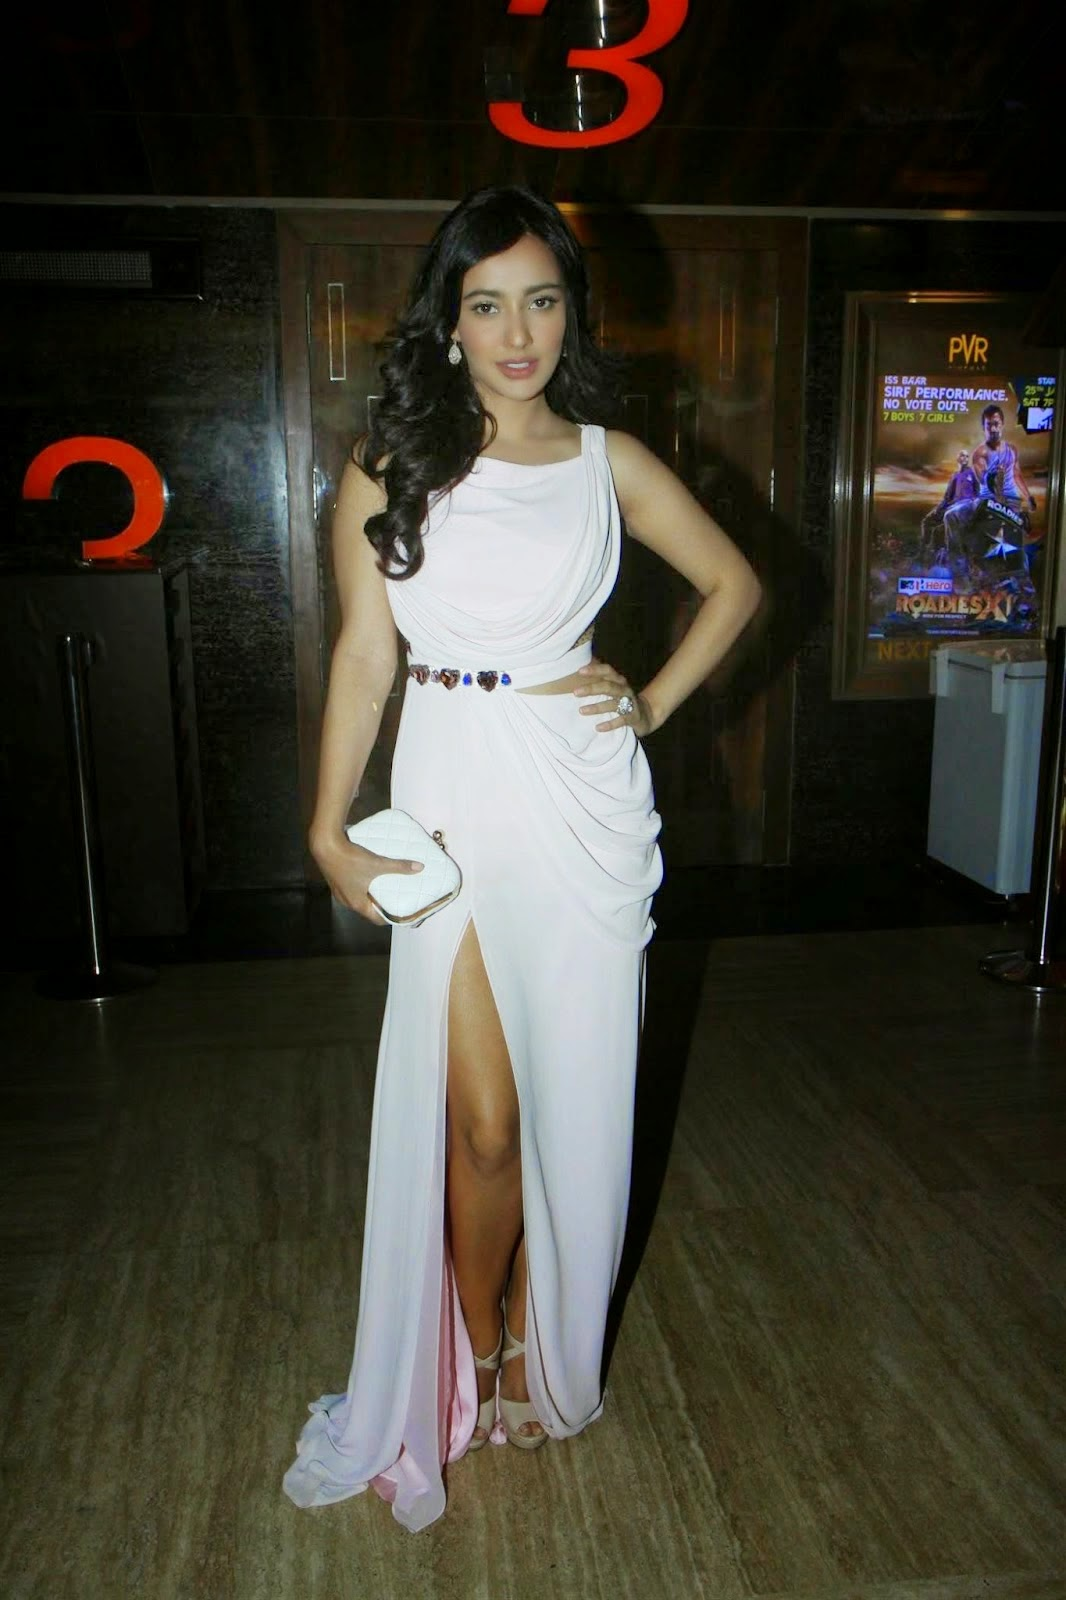 Neha Sharma Looking Hot in White Dress - Unseen hot hd wallpapers